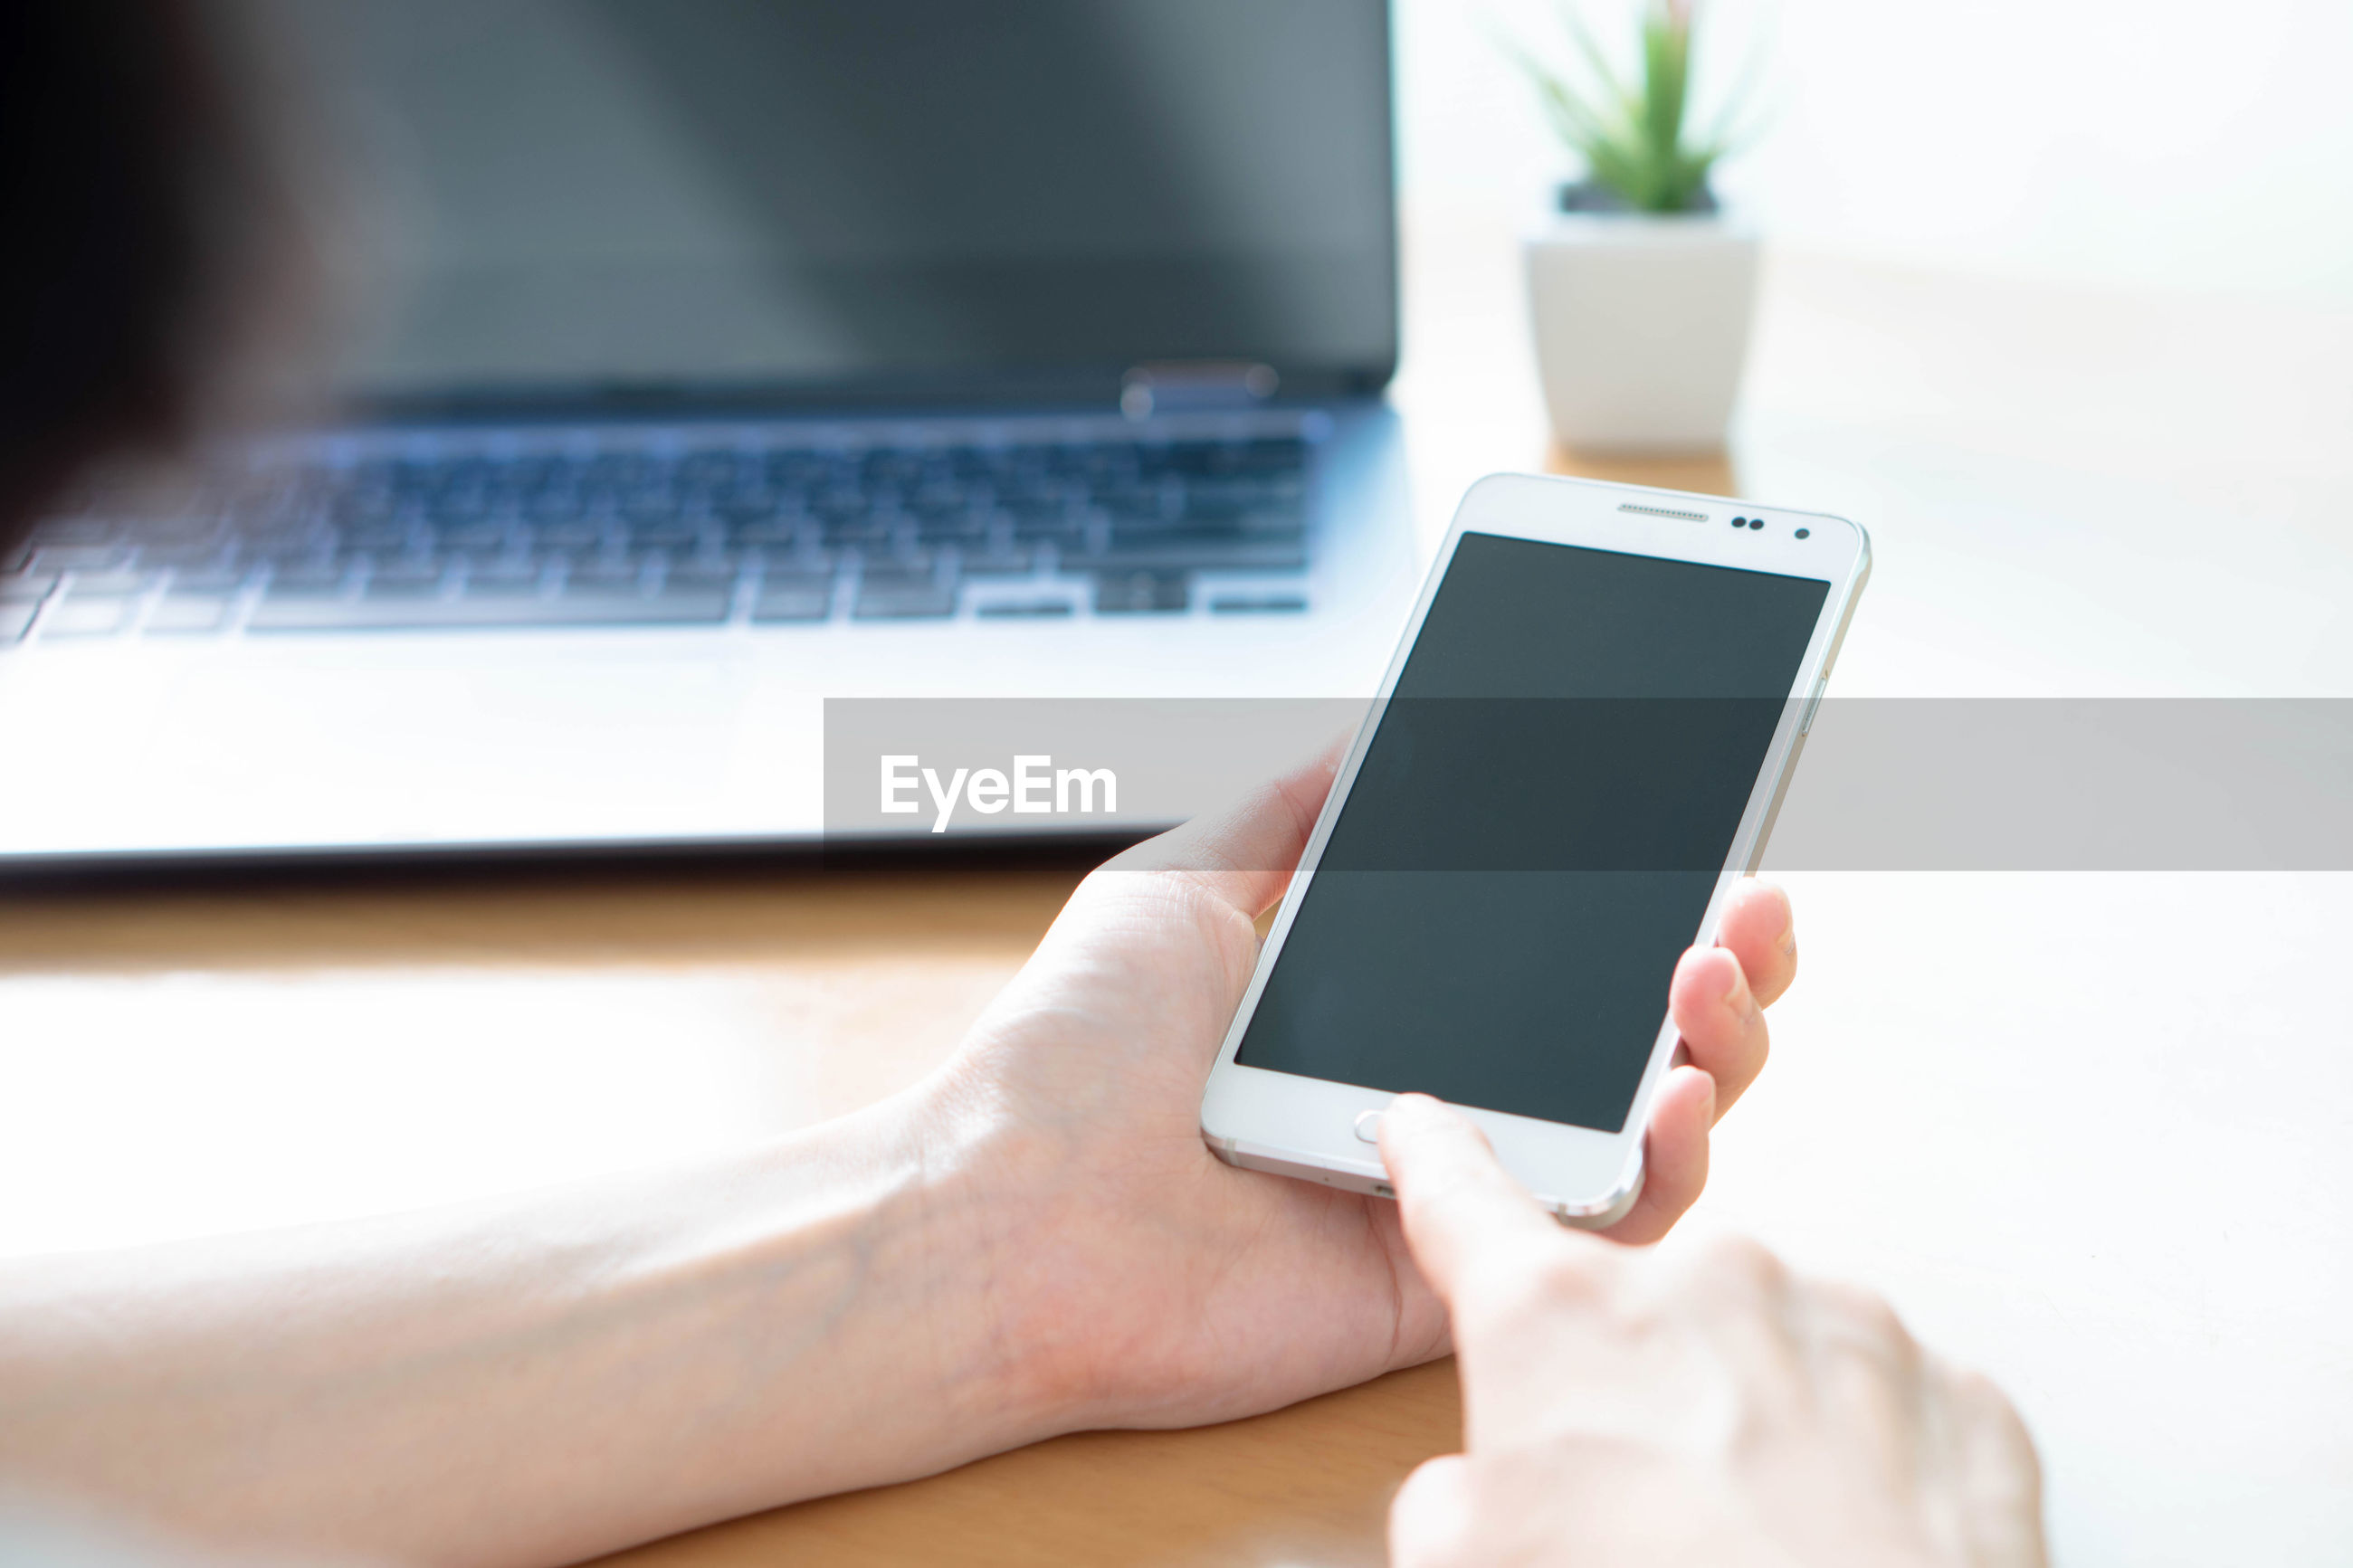 Cropped hand of person using mobile phone and laptop on table